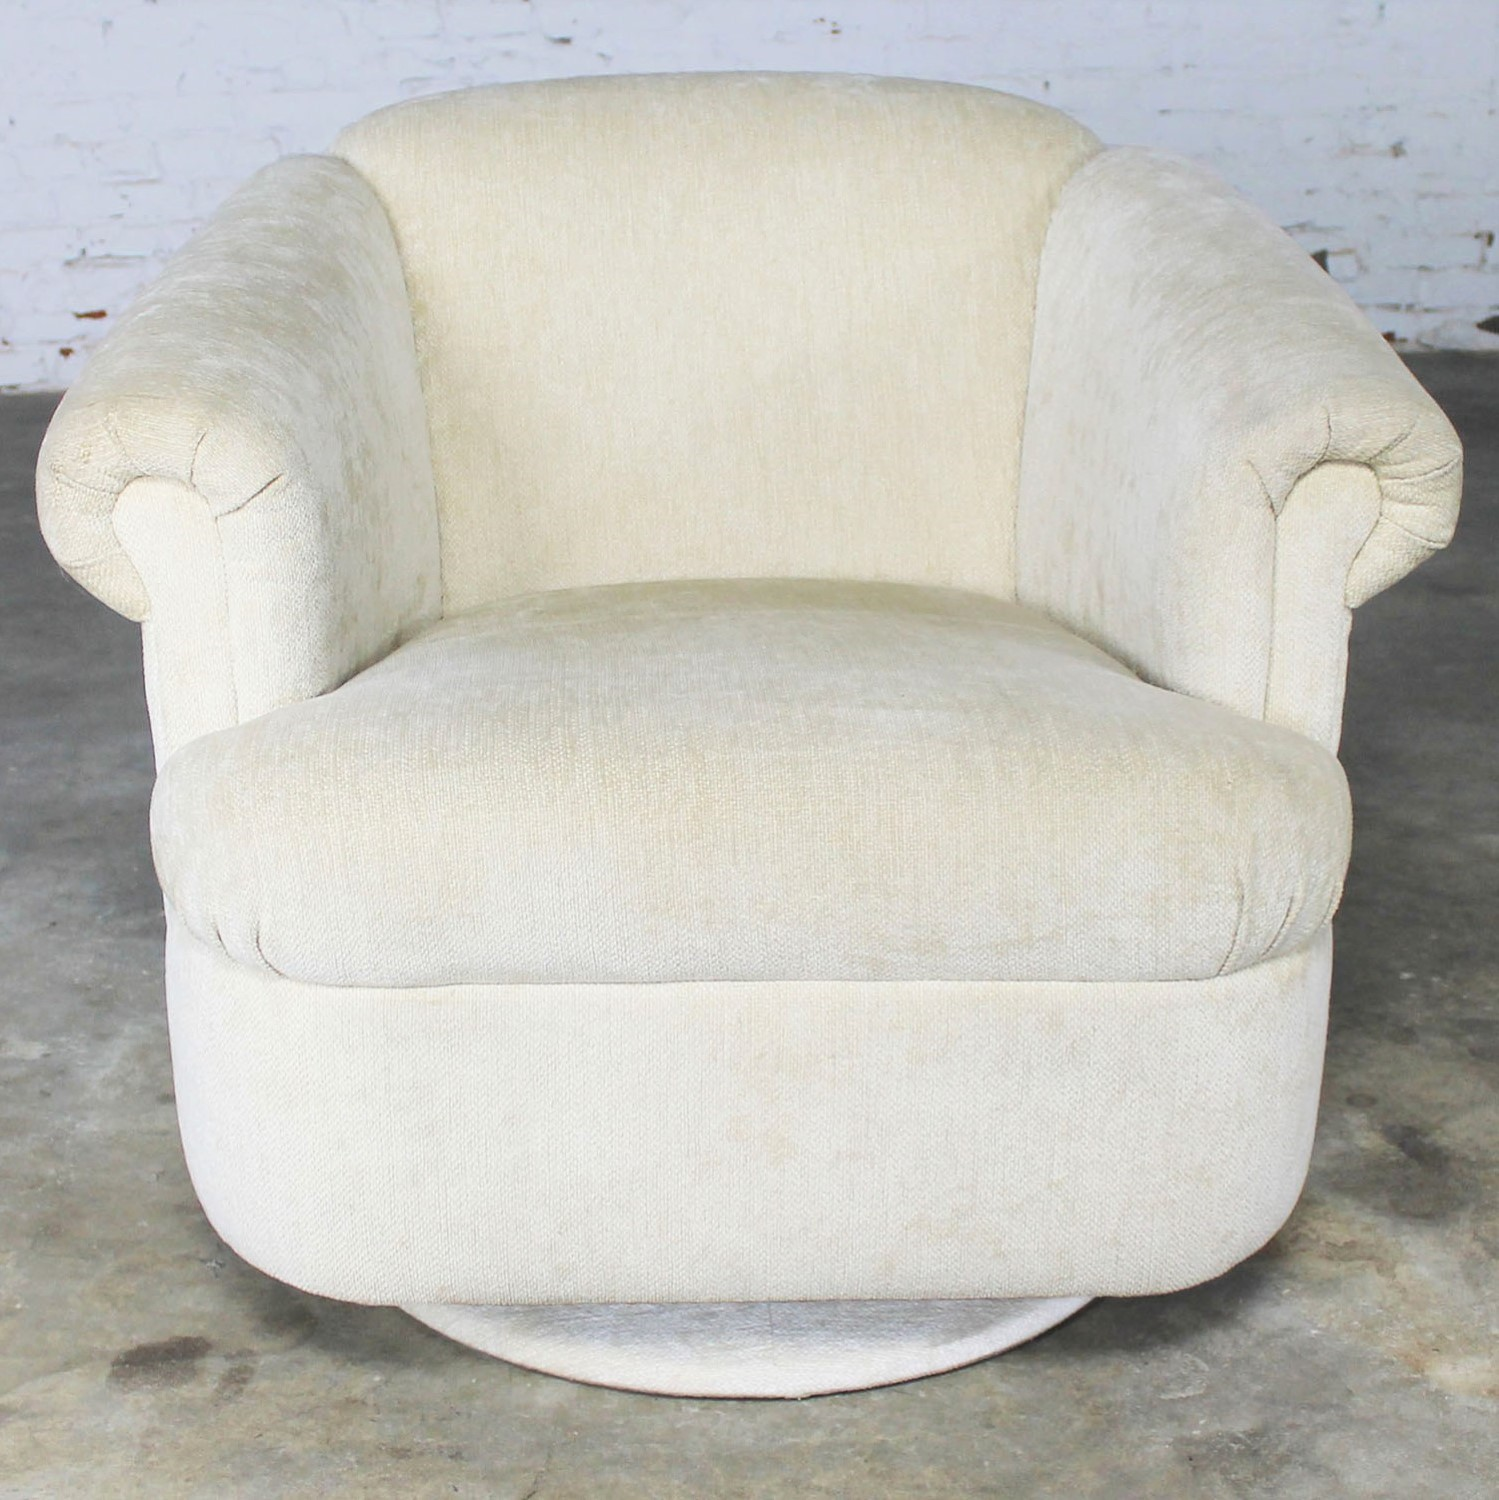 Miraculous Barrel Shaped Off White Vintage Swivel Club Chair With Squirreltailoven Fun Painted Chair Ideas Images Squirreltailovenorg